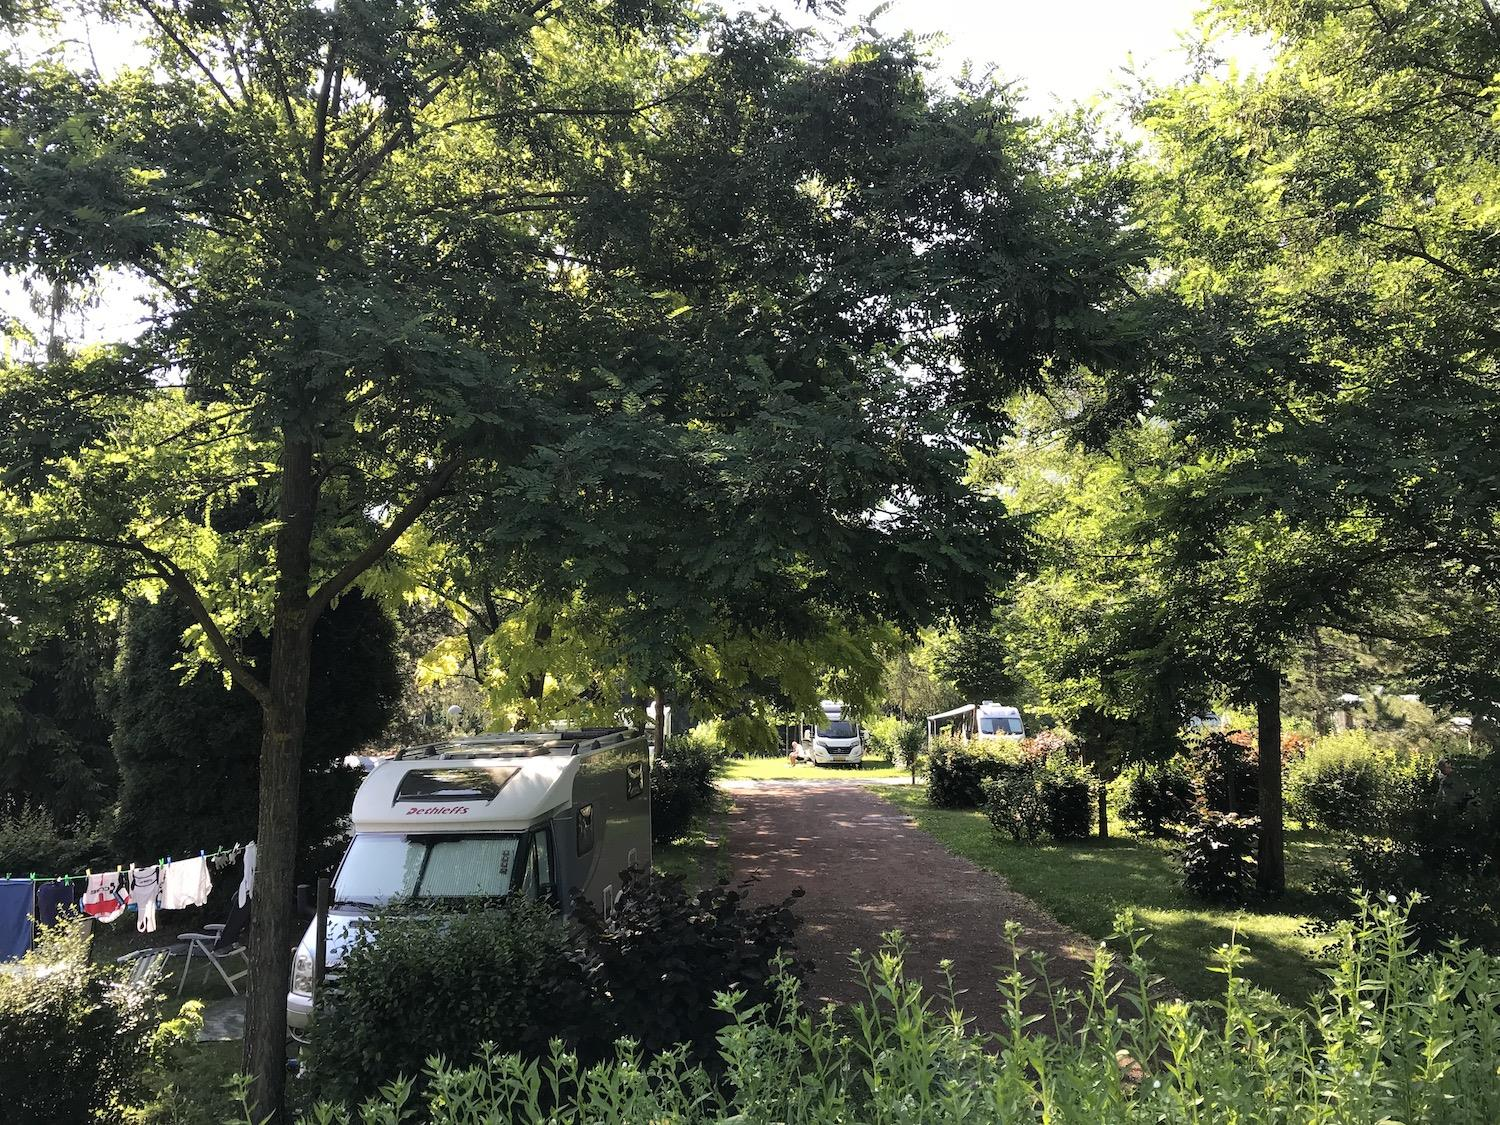 Establishment Camping Les Grands Cols - St. Jean-De-Maurienne